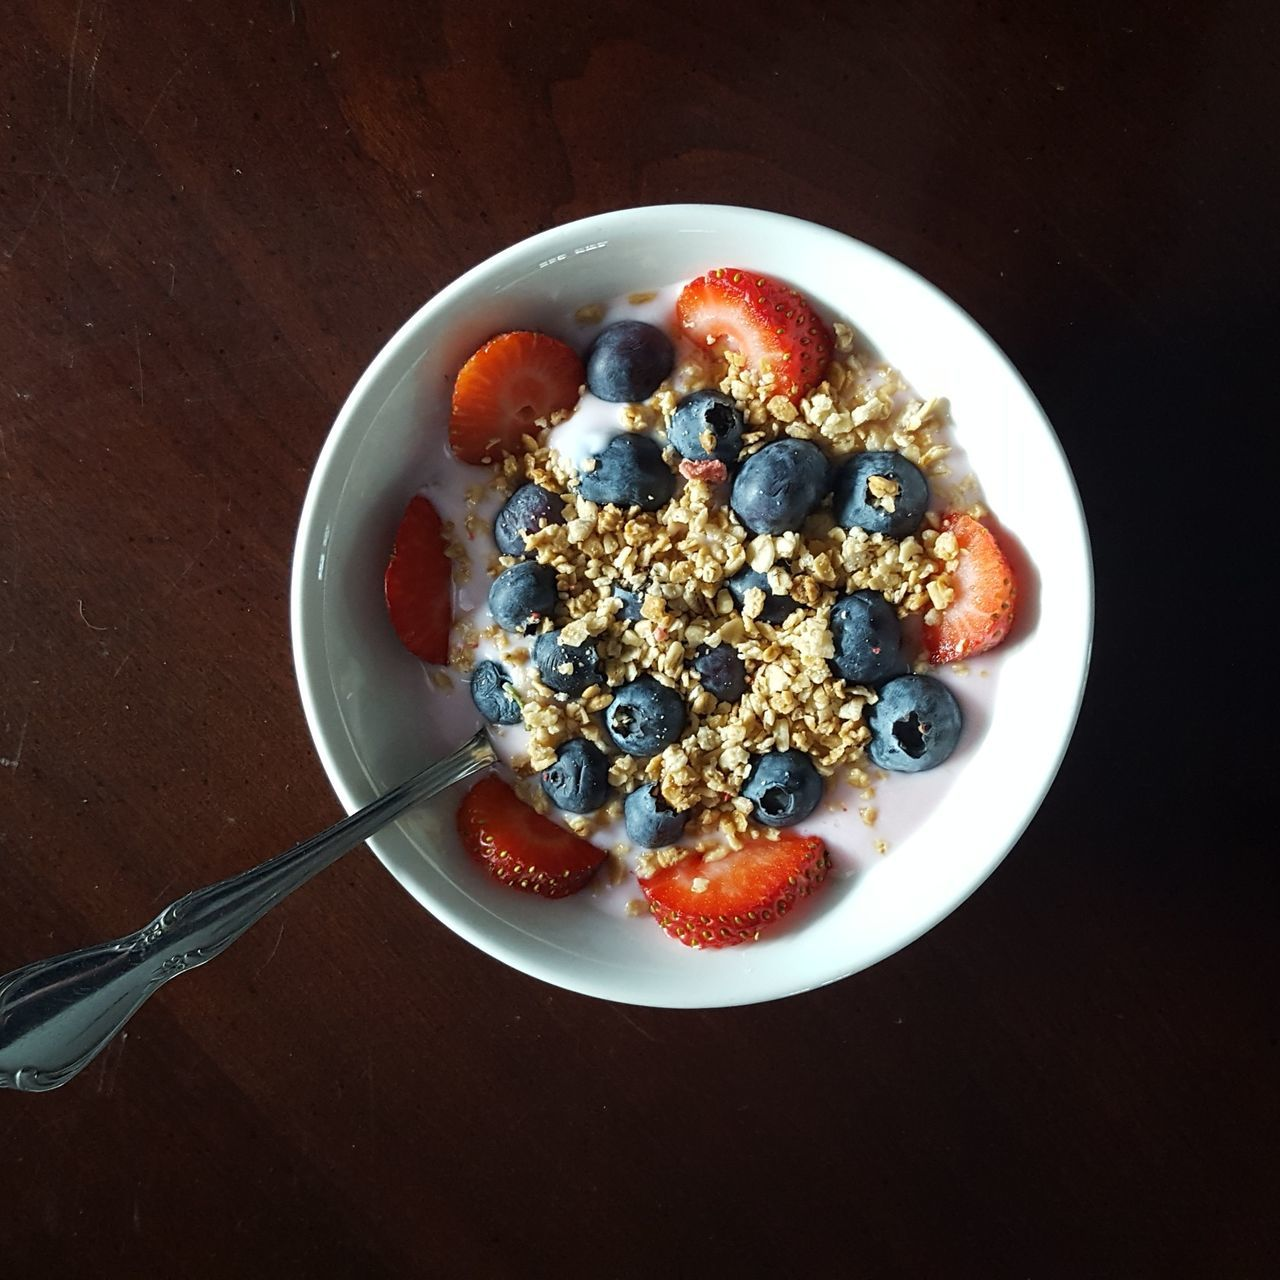 Directly Above Shot Of Breakfast Cereal On Table